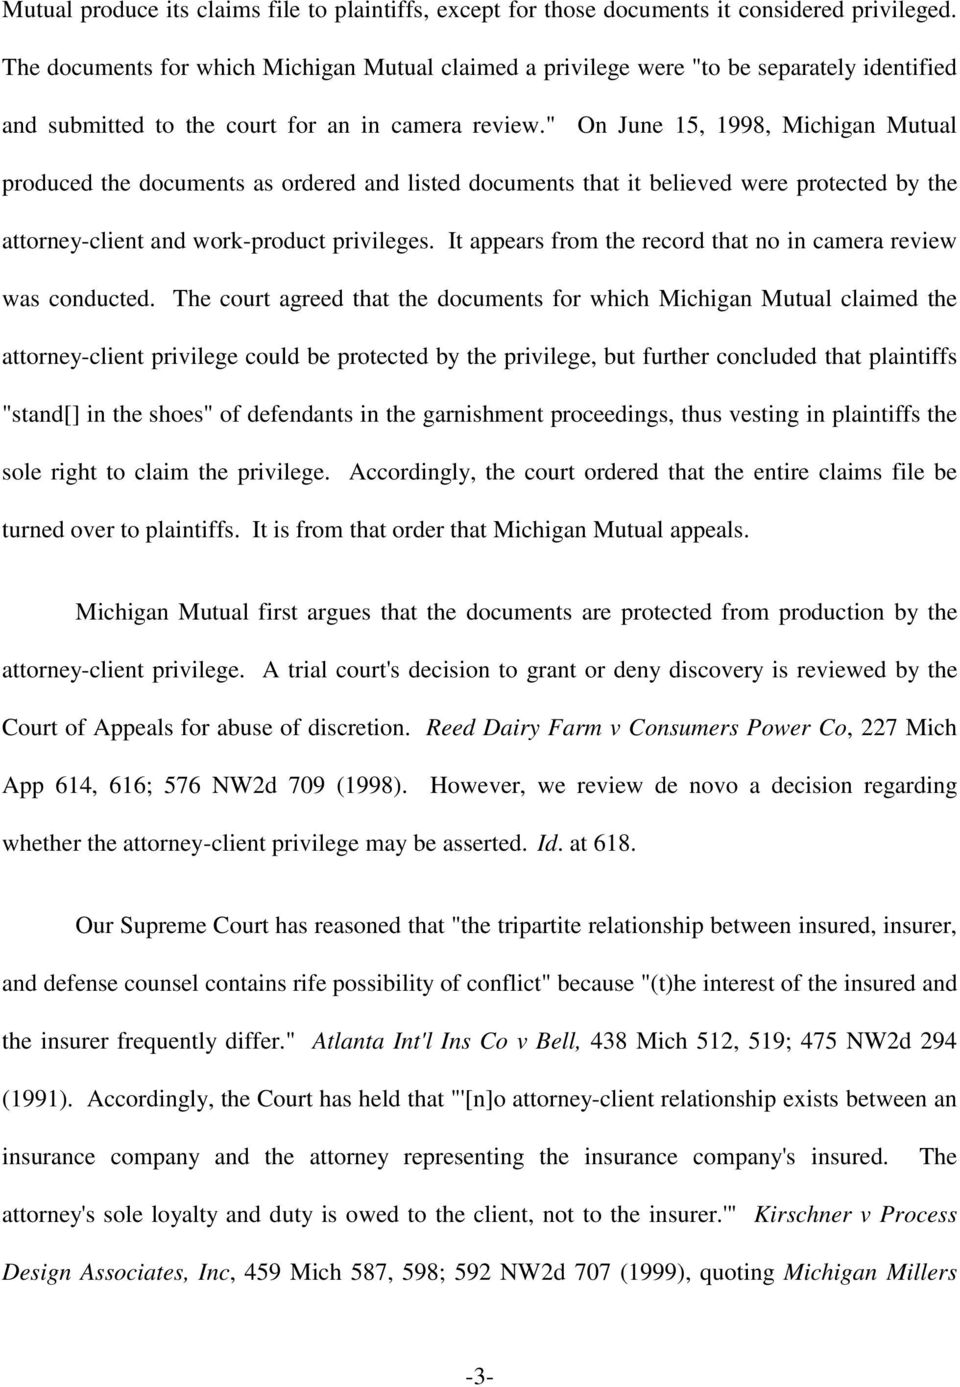 """ On June 15, 1998, Michigan Mutual produced the documents as ordered and listed documents that it believed were protected by the attorney-client and work-product privileges."